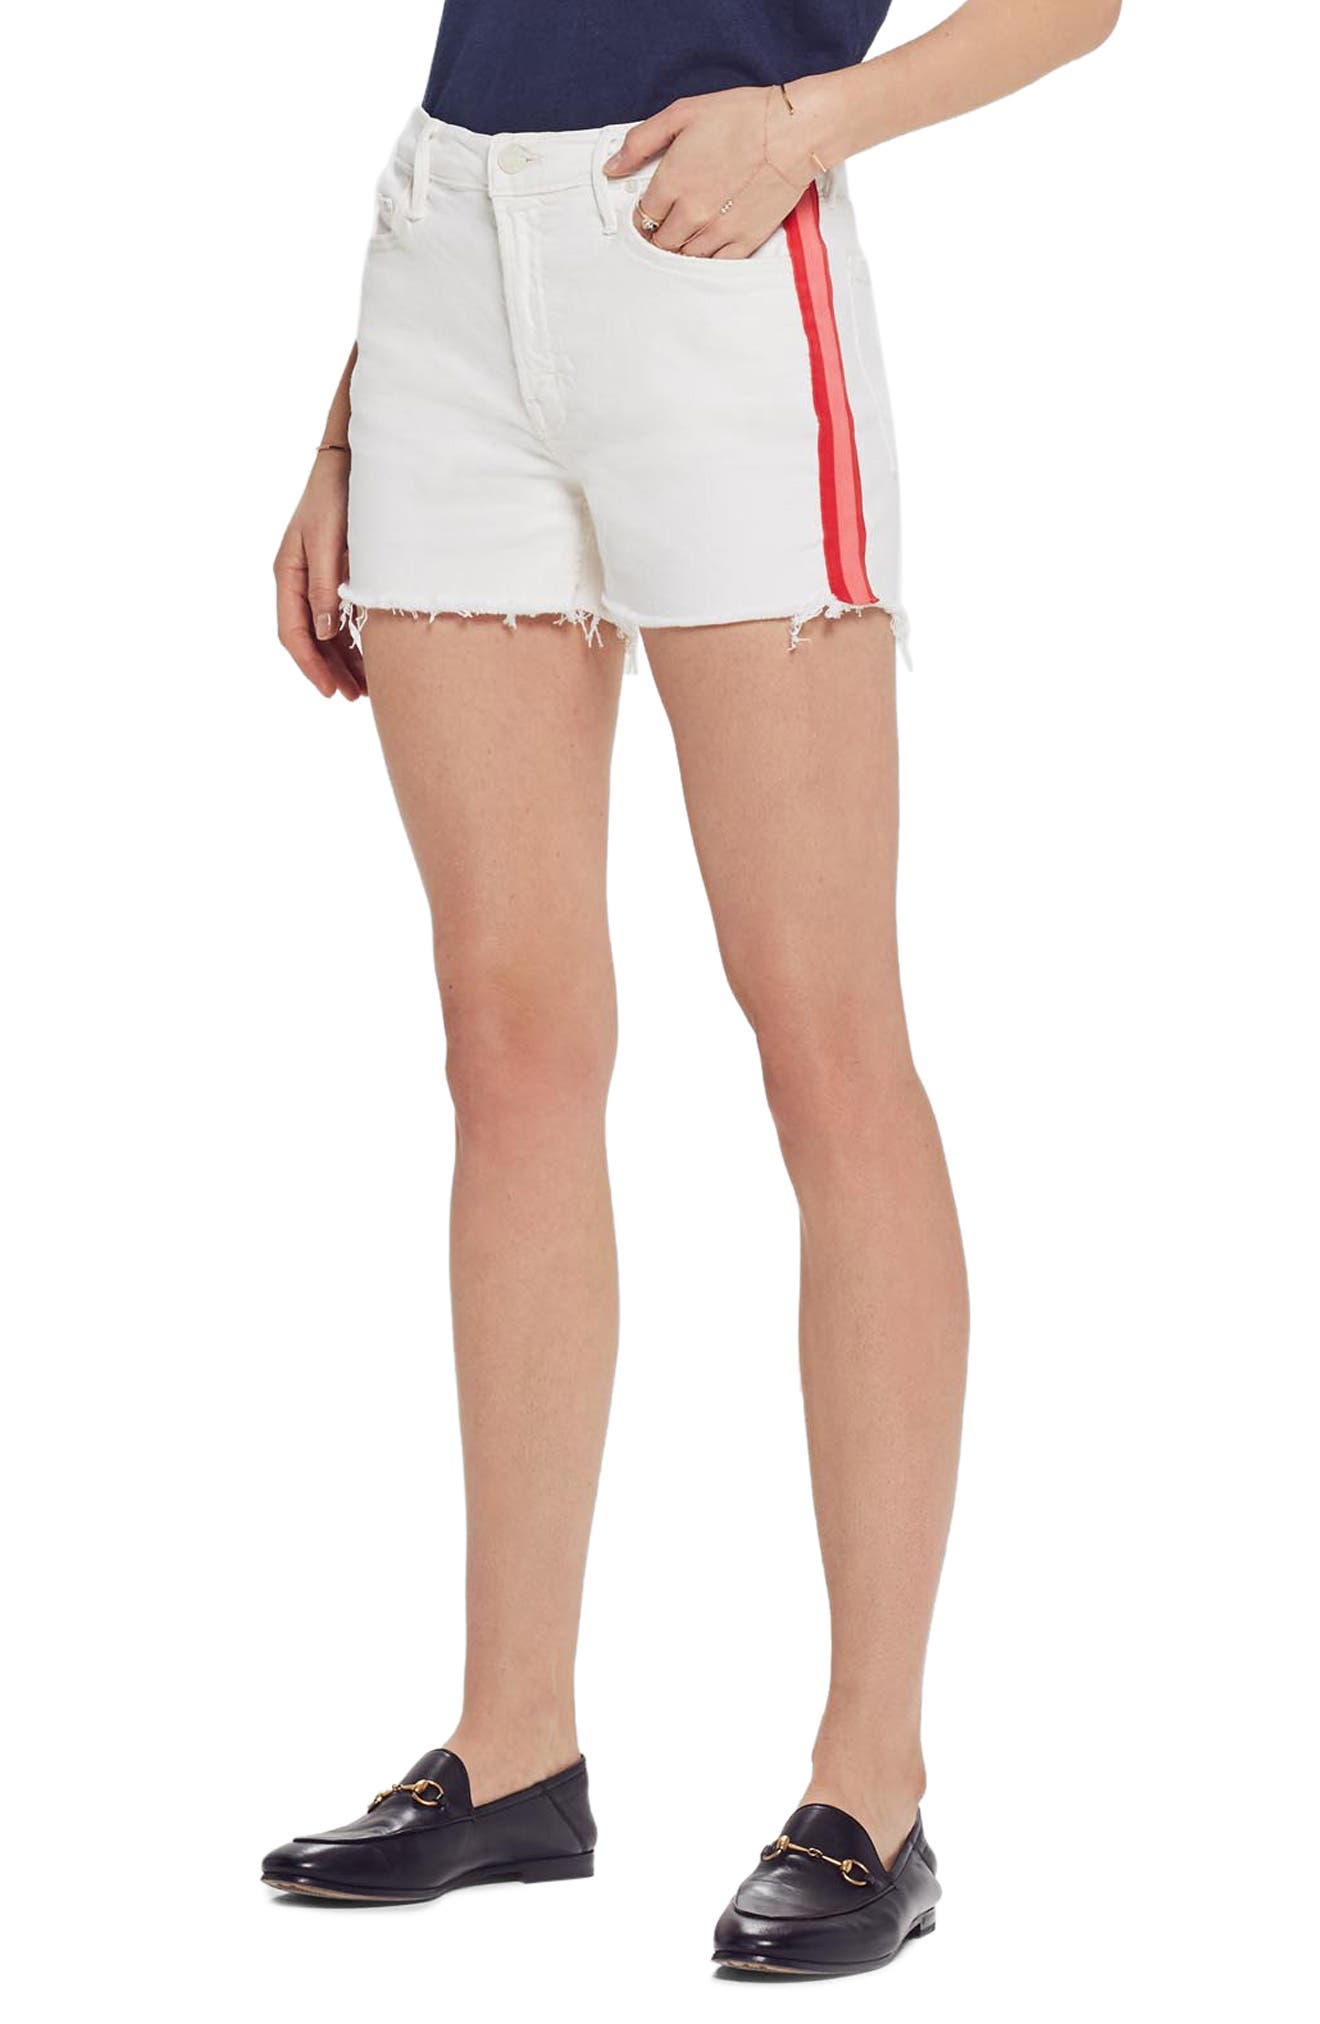 MOTHER, The Sinner Frayed Denim Shorts, Main thumbnail 1, color, WHIPPING THE CREAM PINK RACER